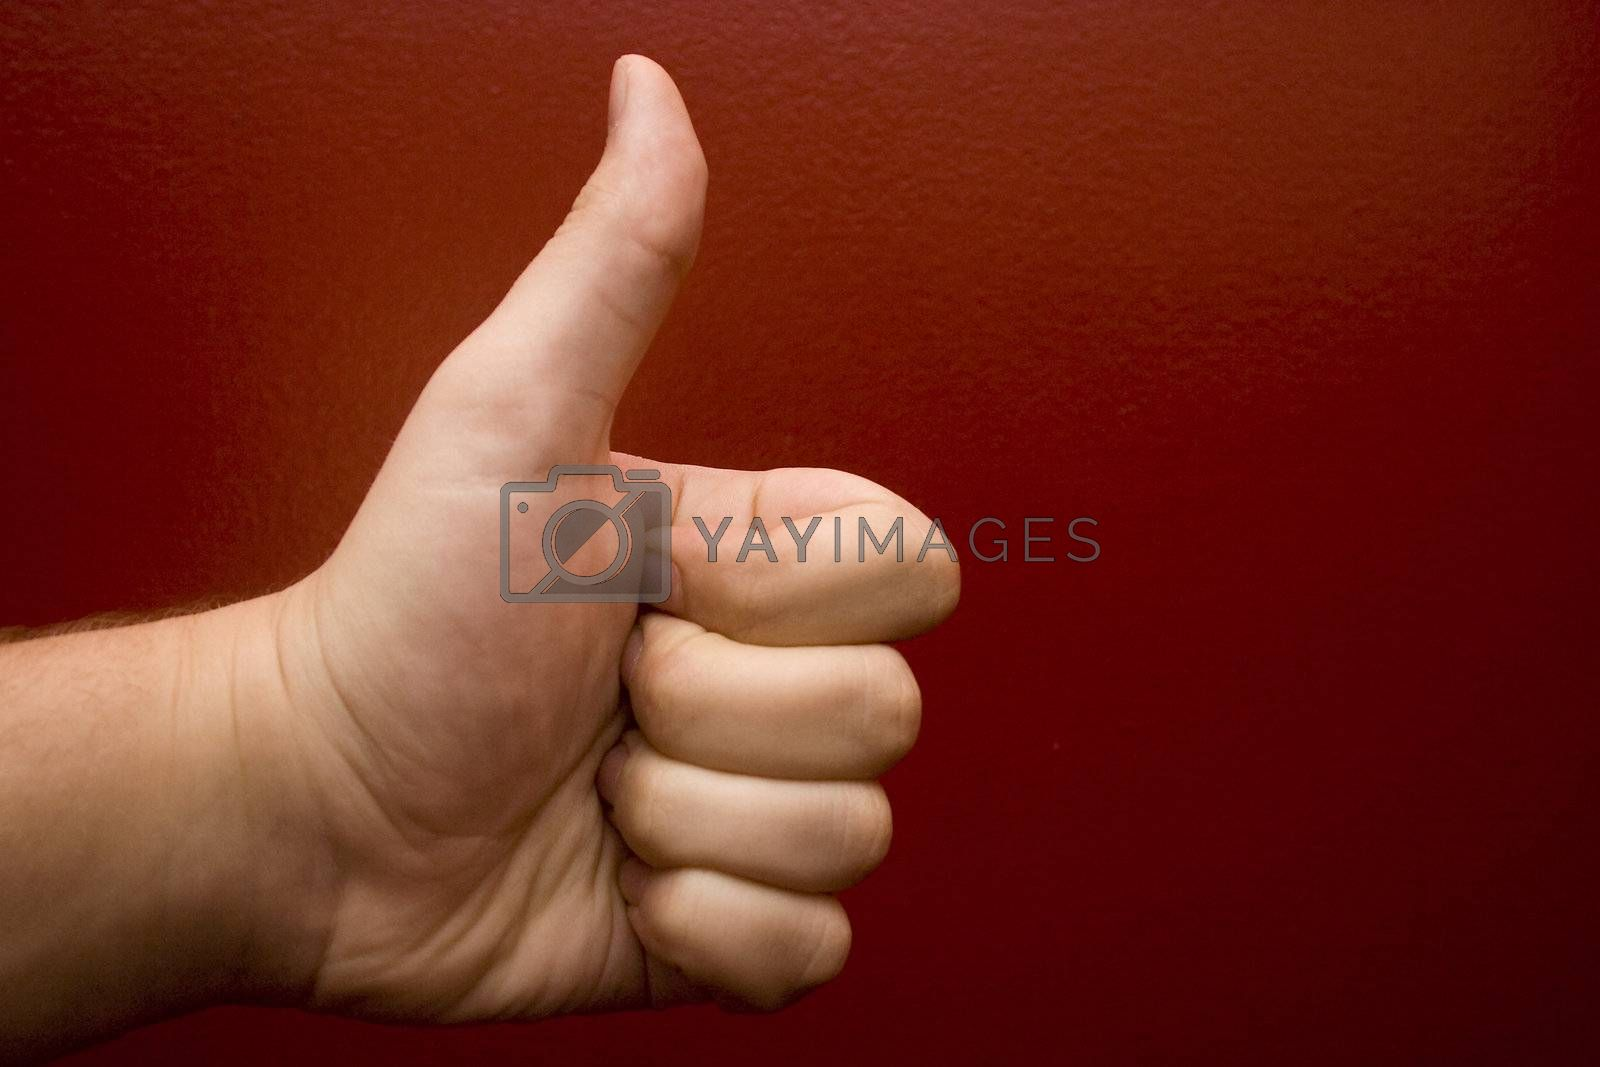 A hand giving a thumbs up on a burgundy background